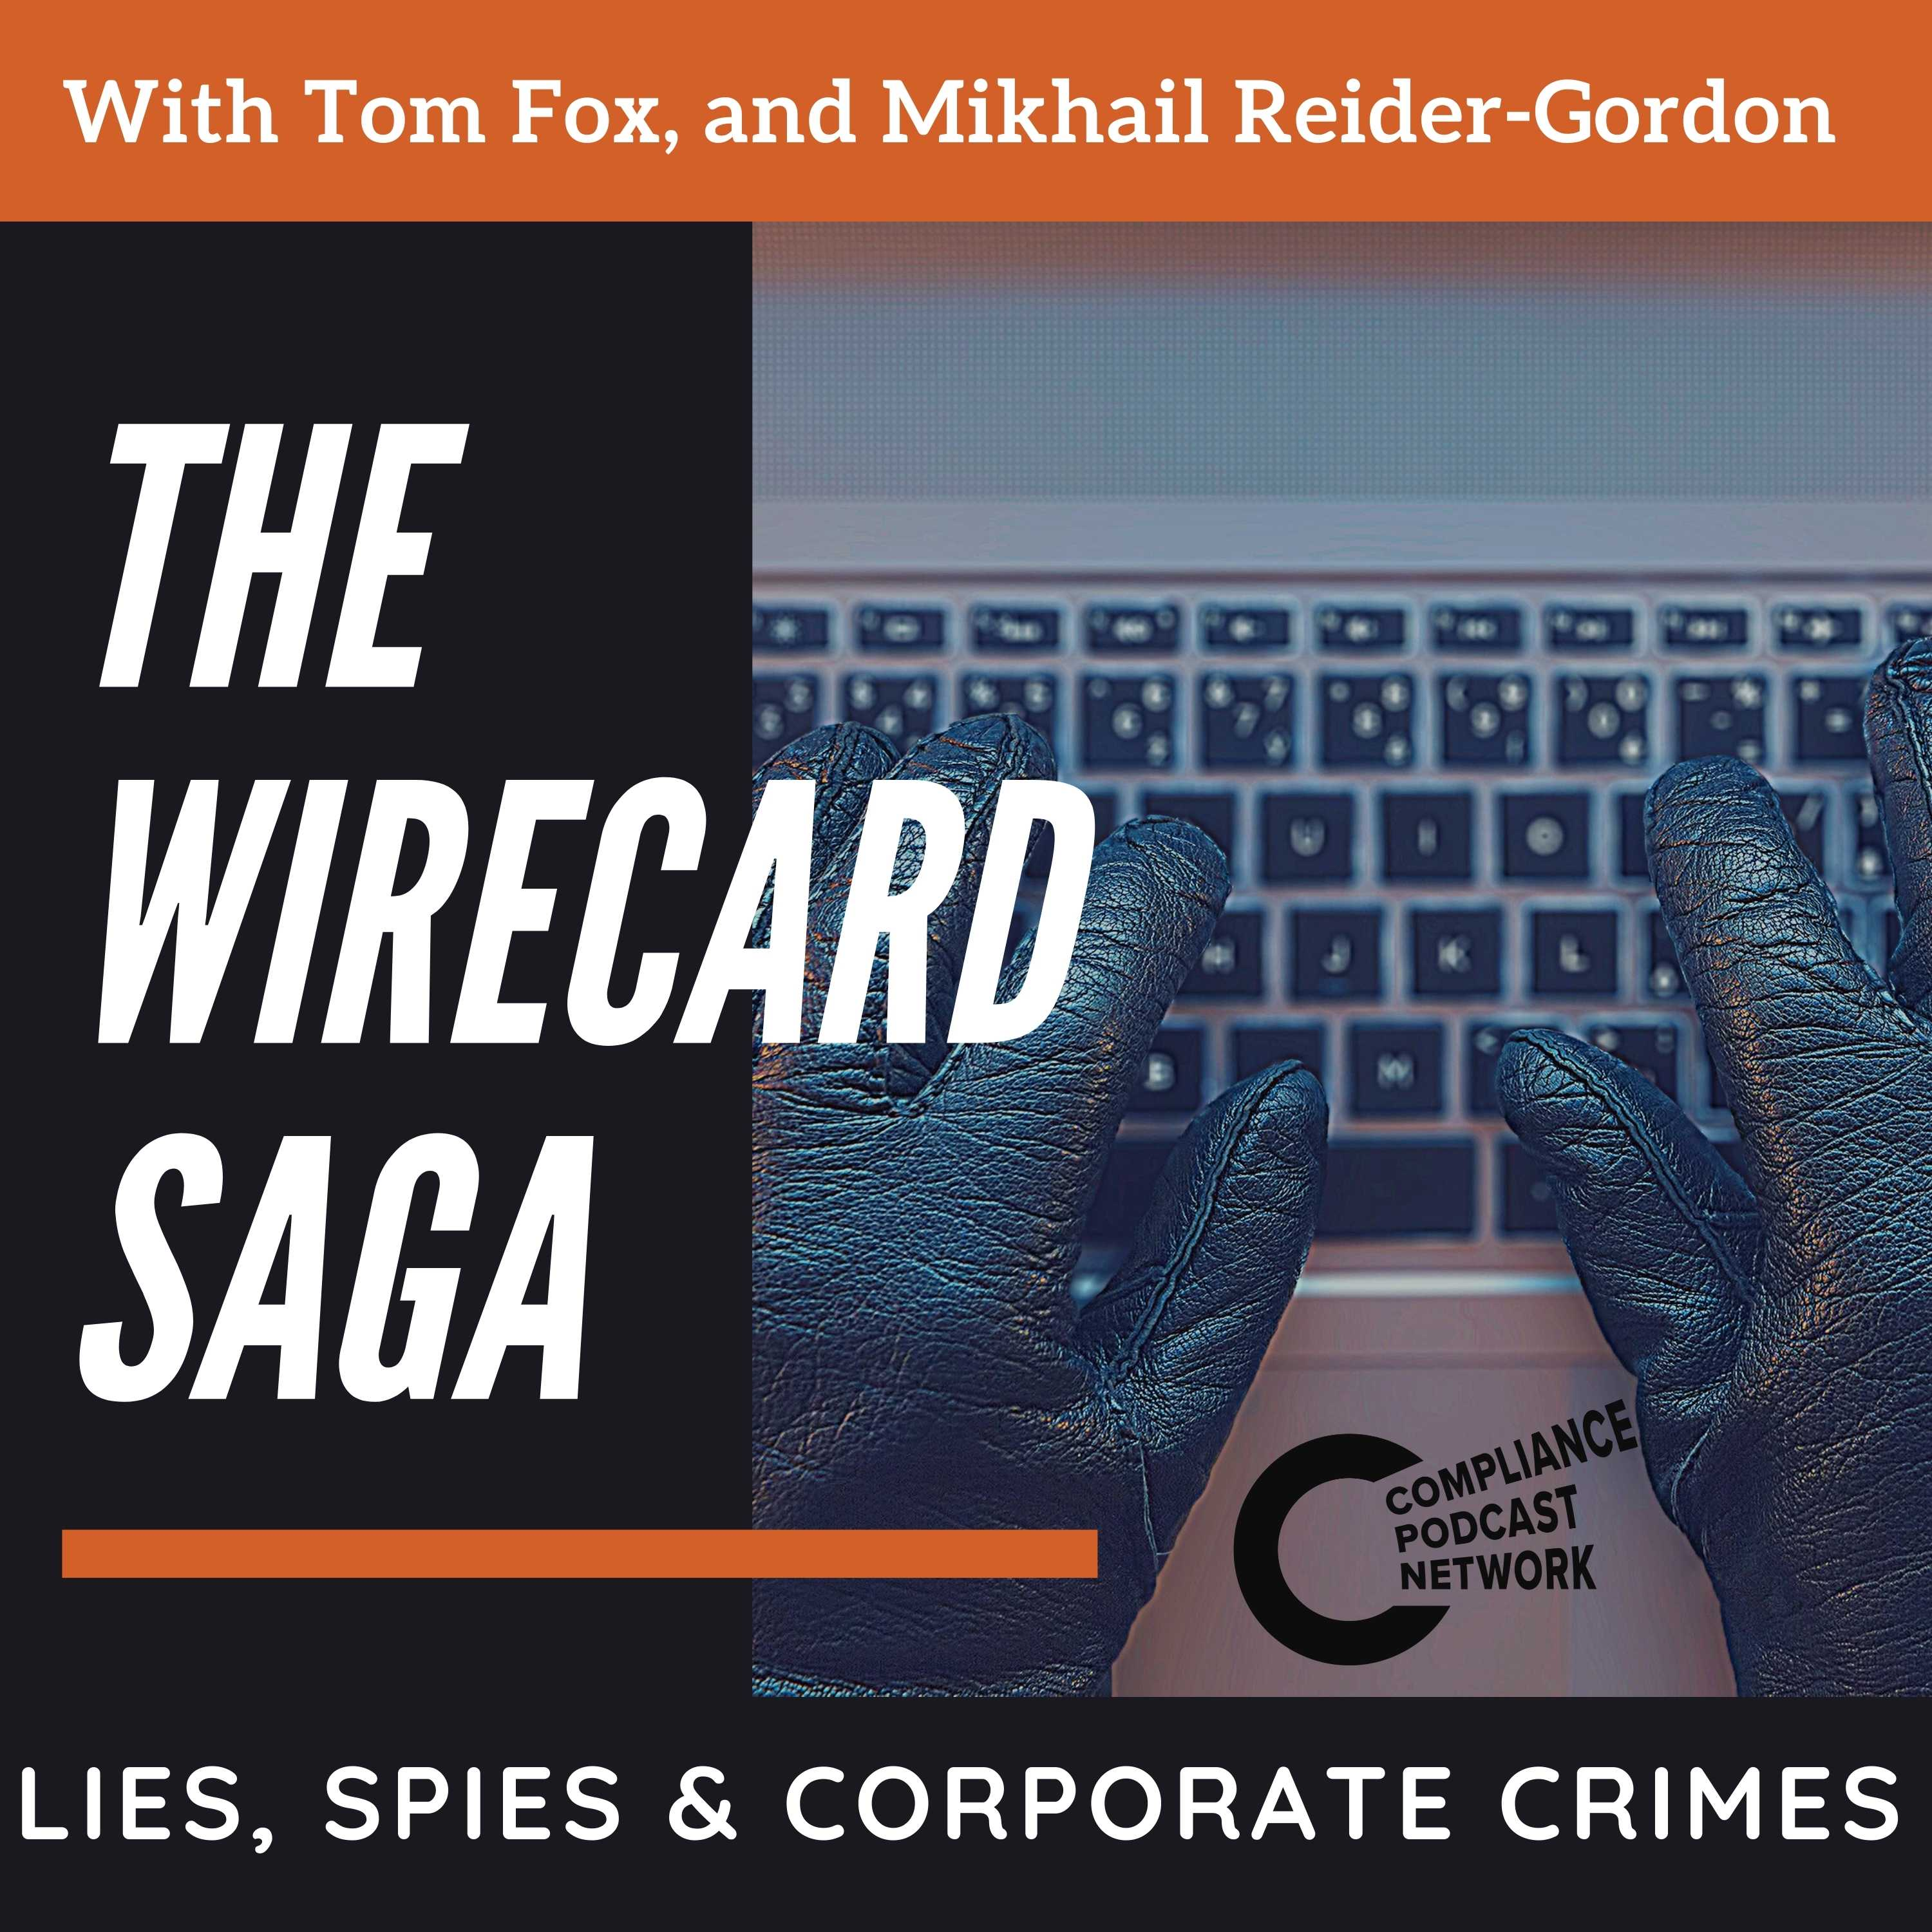 The Wirecard Saga